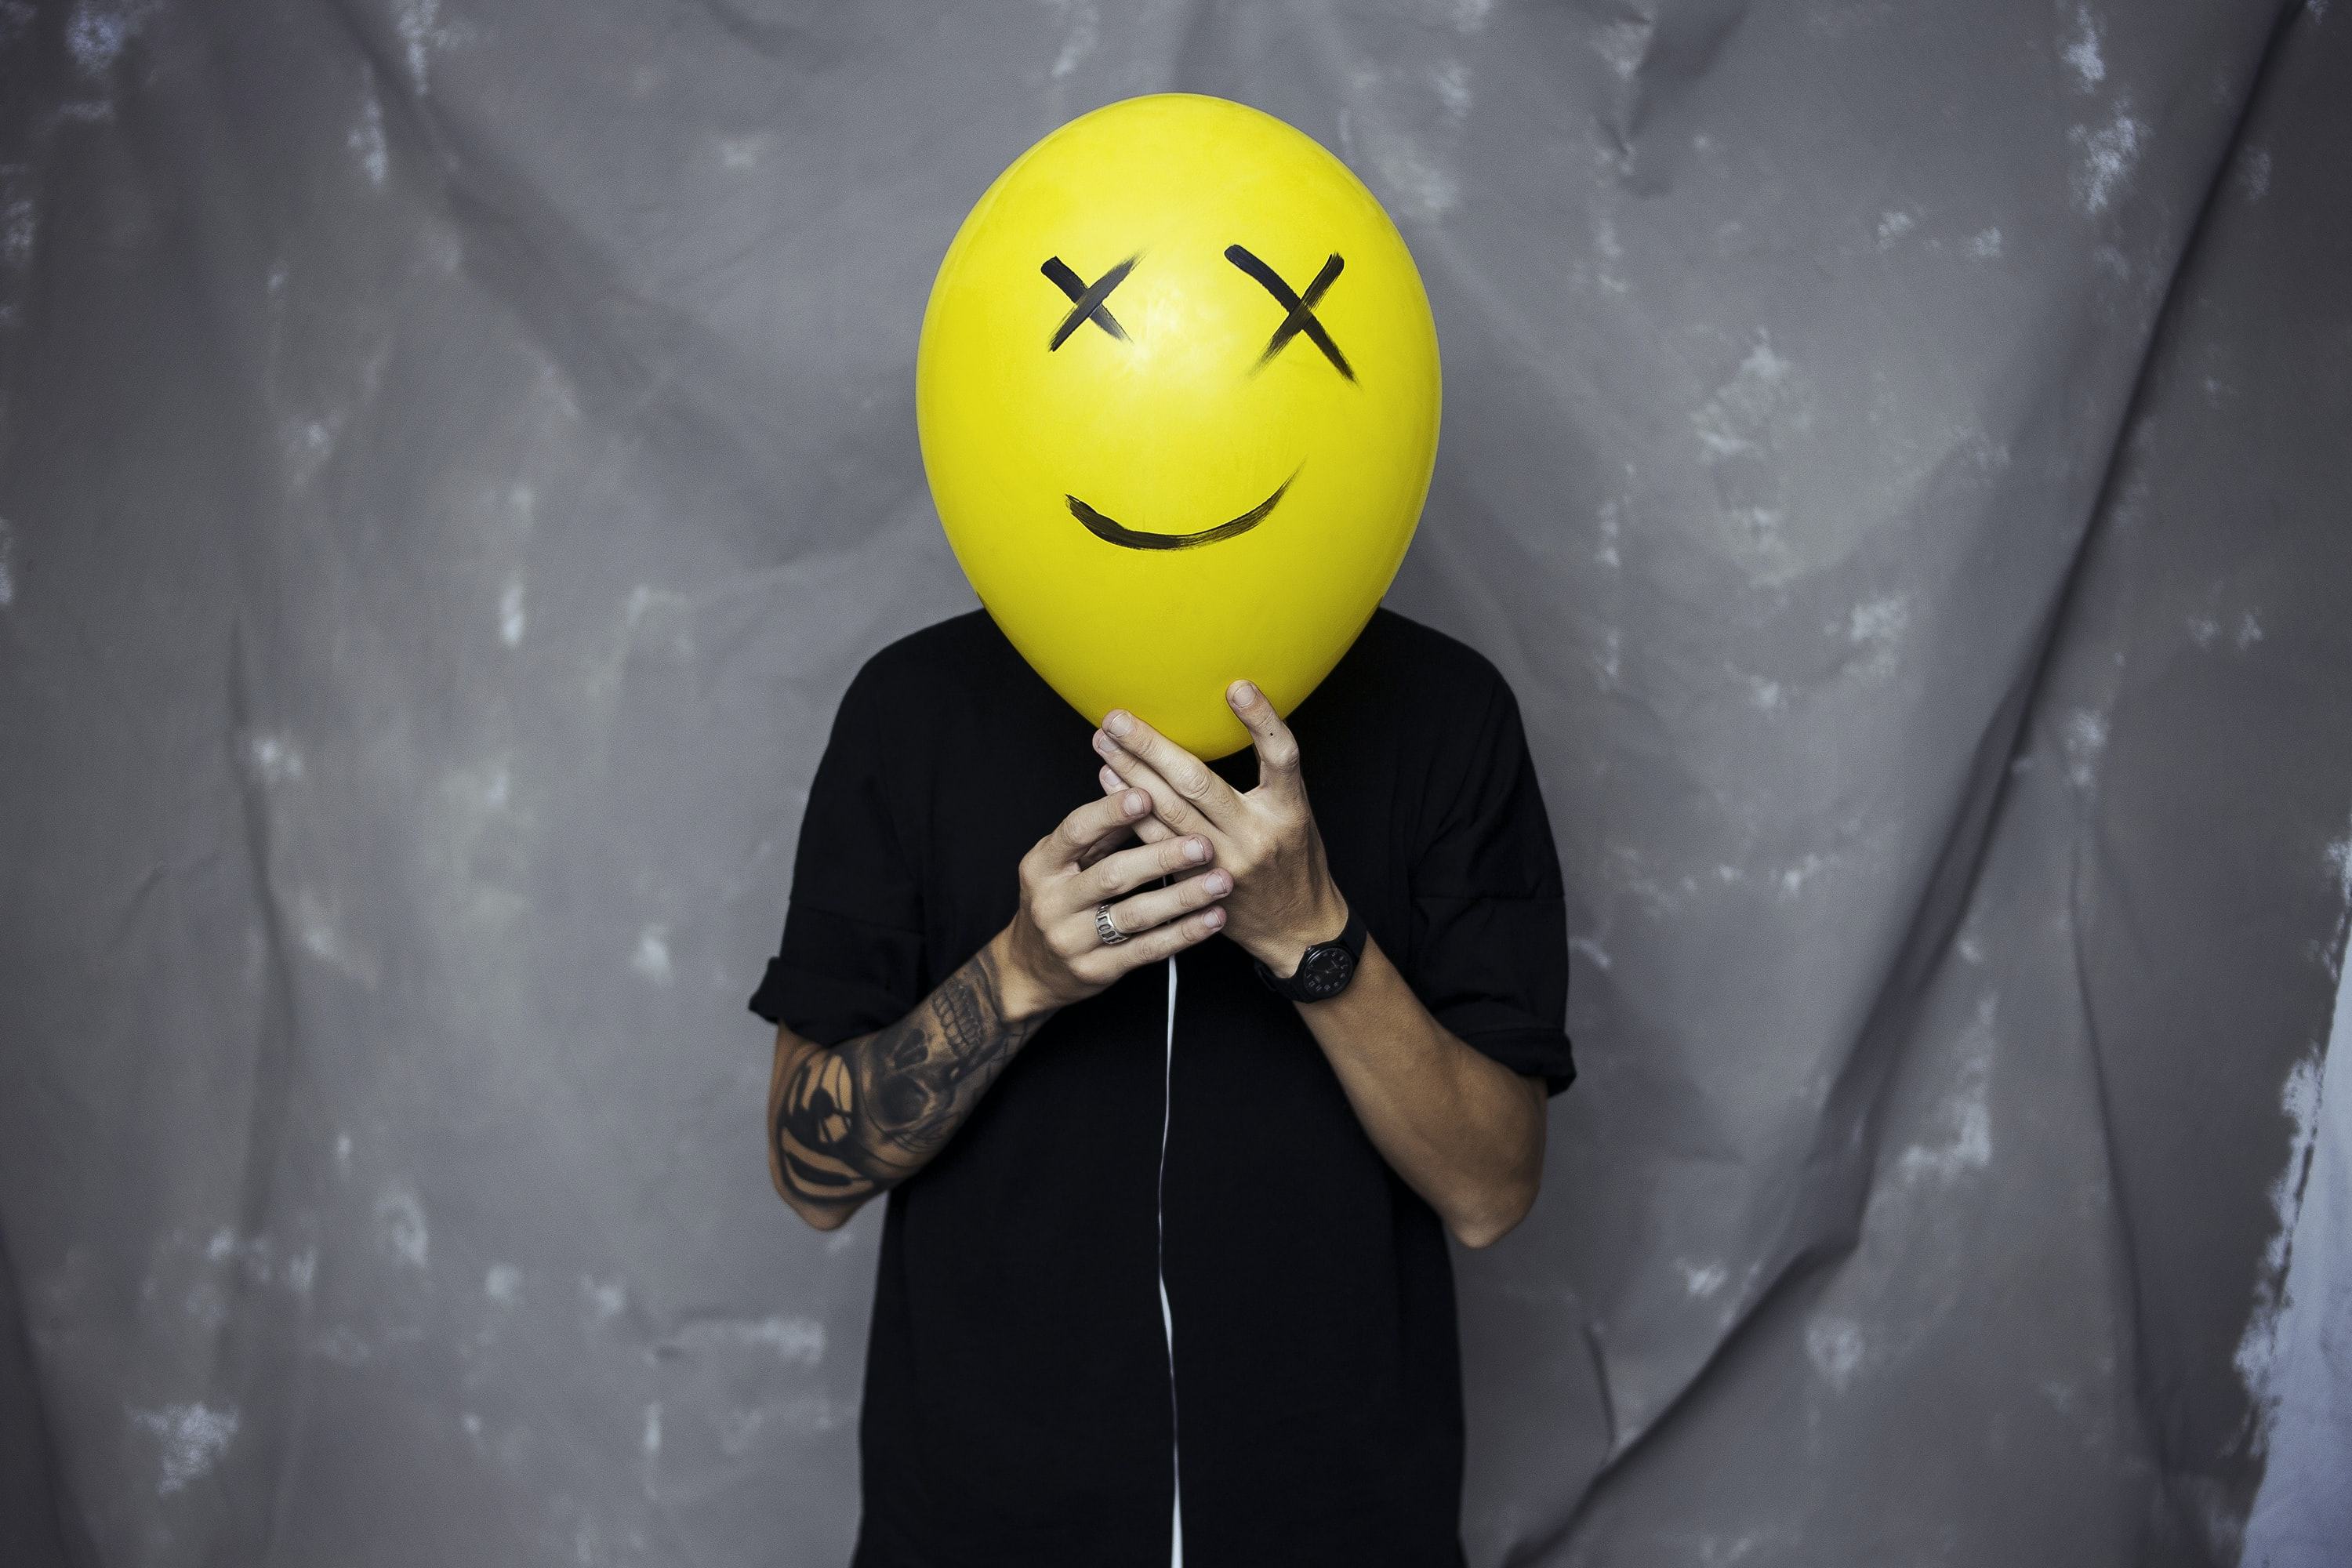 person wearing black shirt holding yellow and black balloon